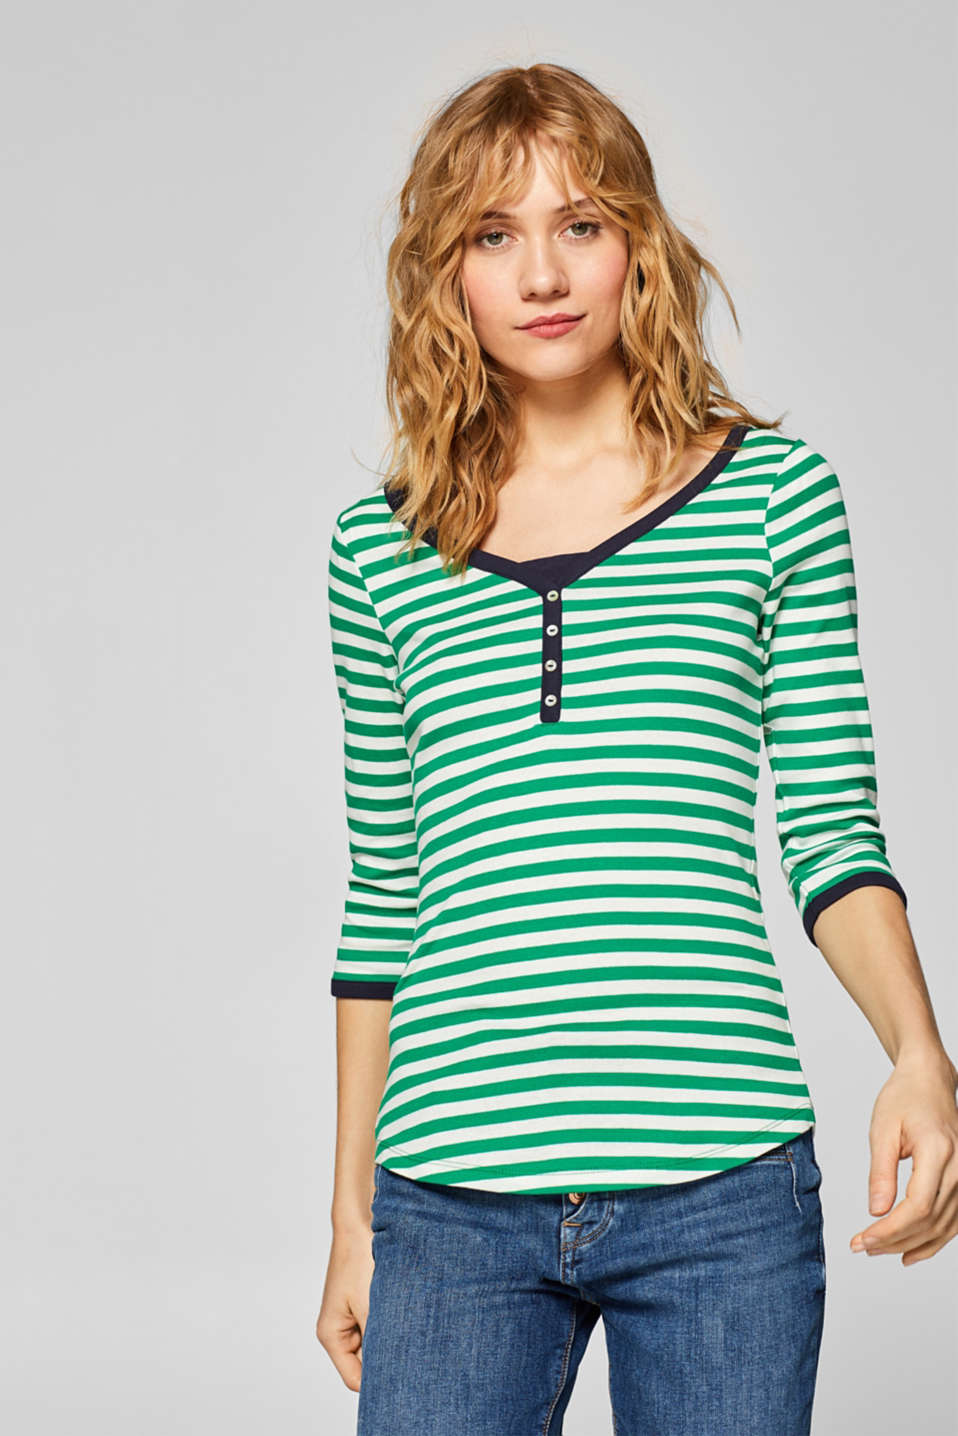 Esprit - Striped T-shirt with a button placket, 100% cotton